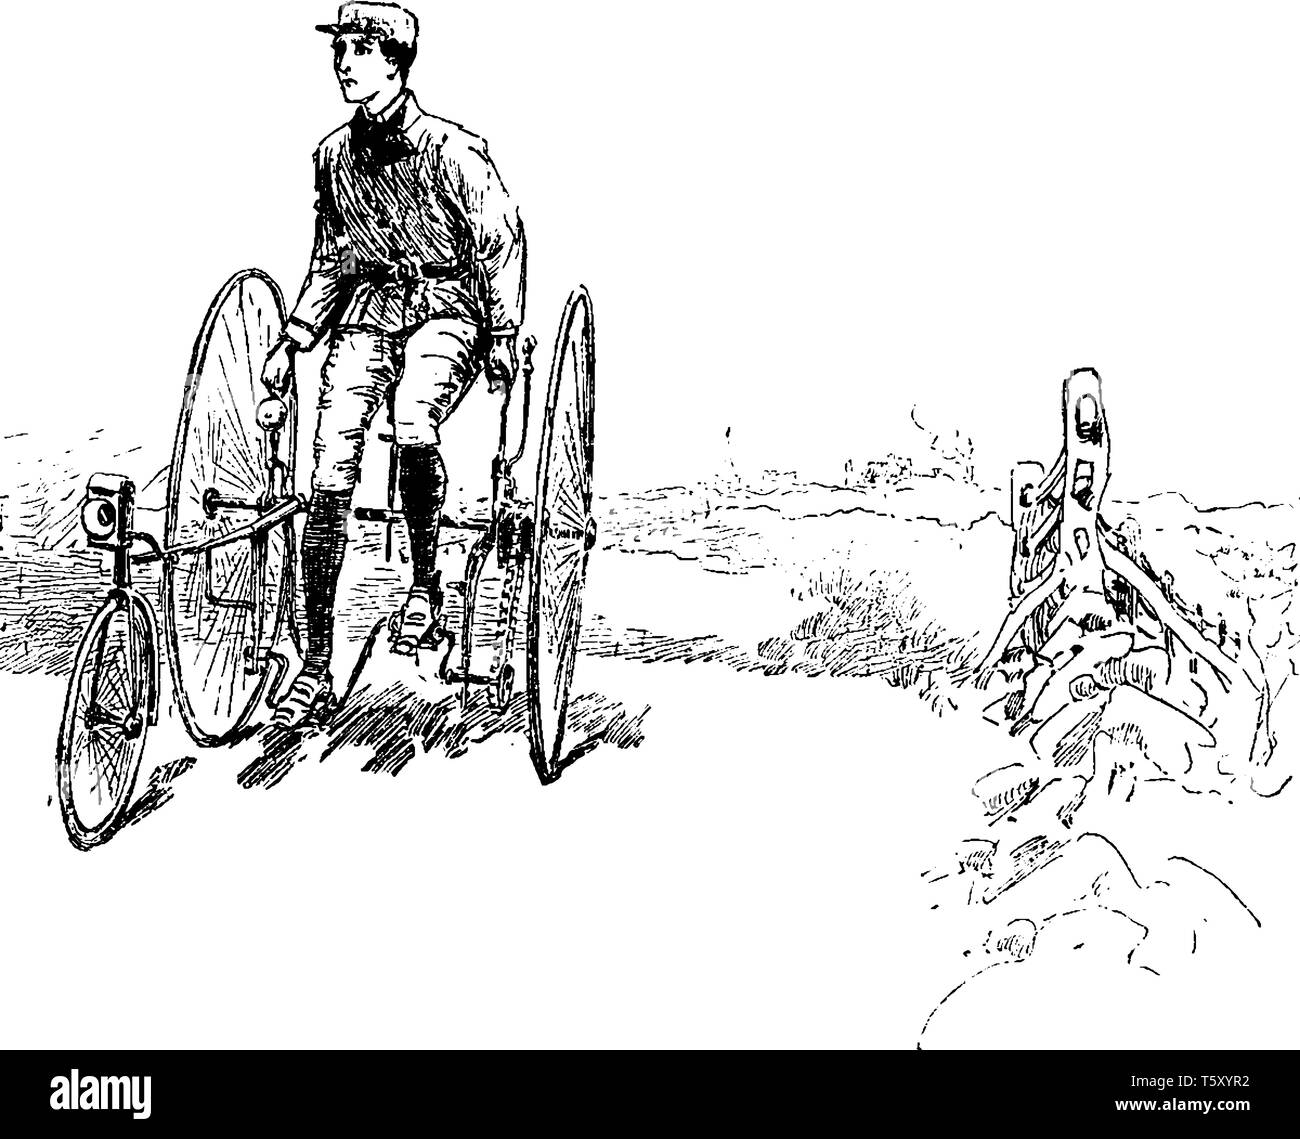 Man On A Tricycle Where A Man Riding A Tricycle And Looking Over Her Shoulder Vintage Line Drawing Or Engraving Illustration Stock Vector Image Art Alamy